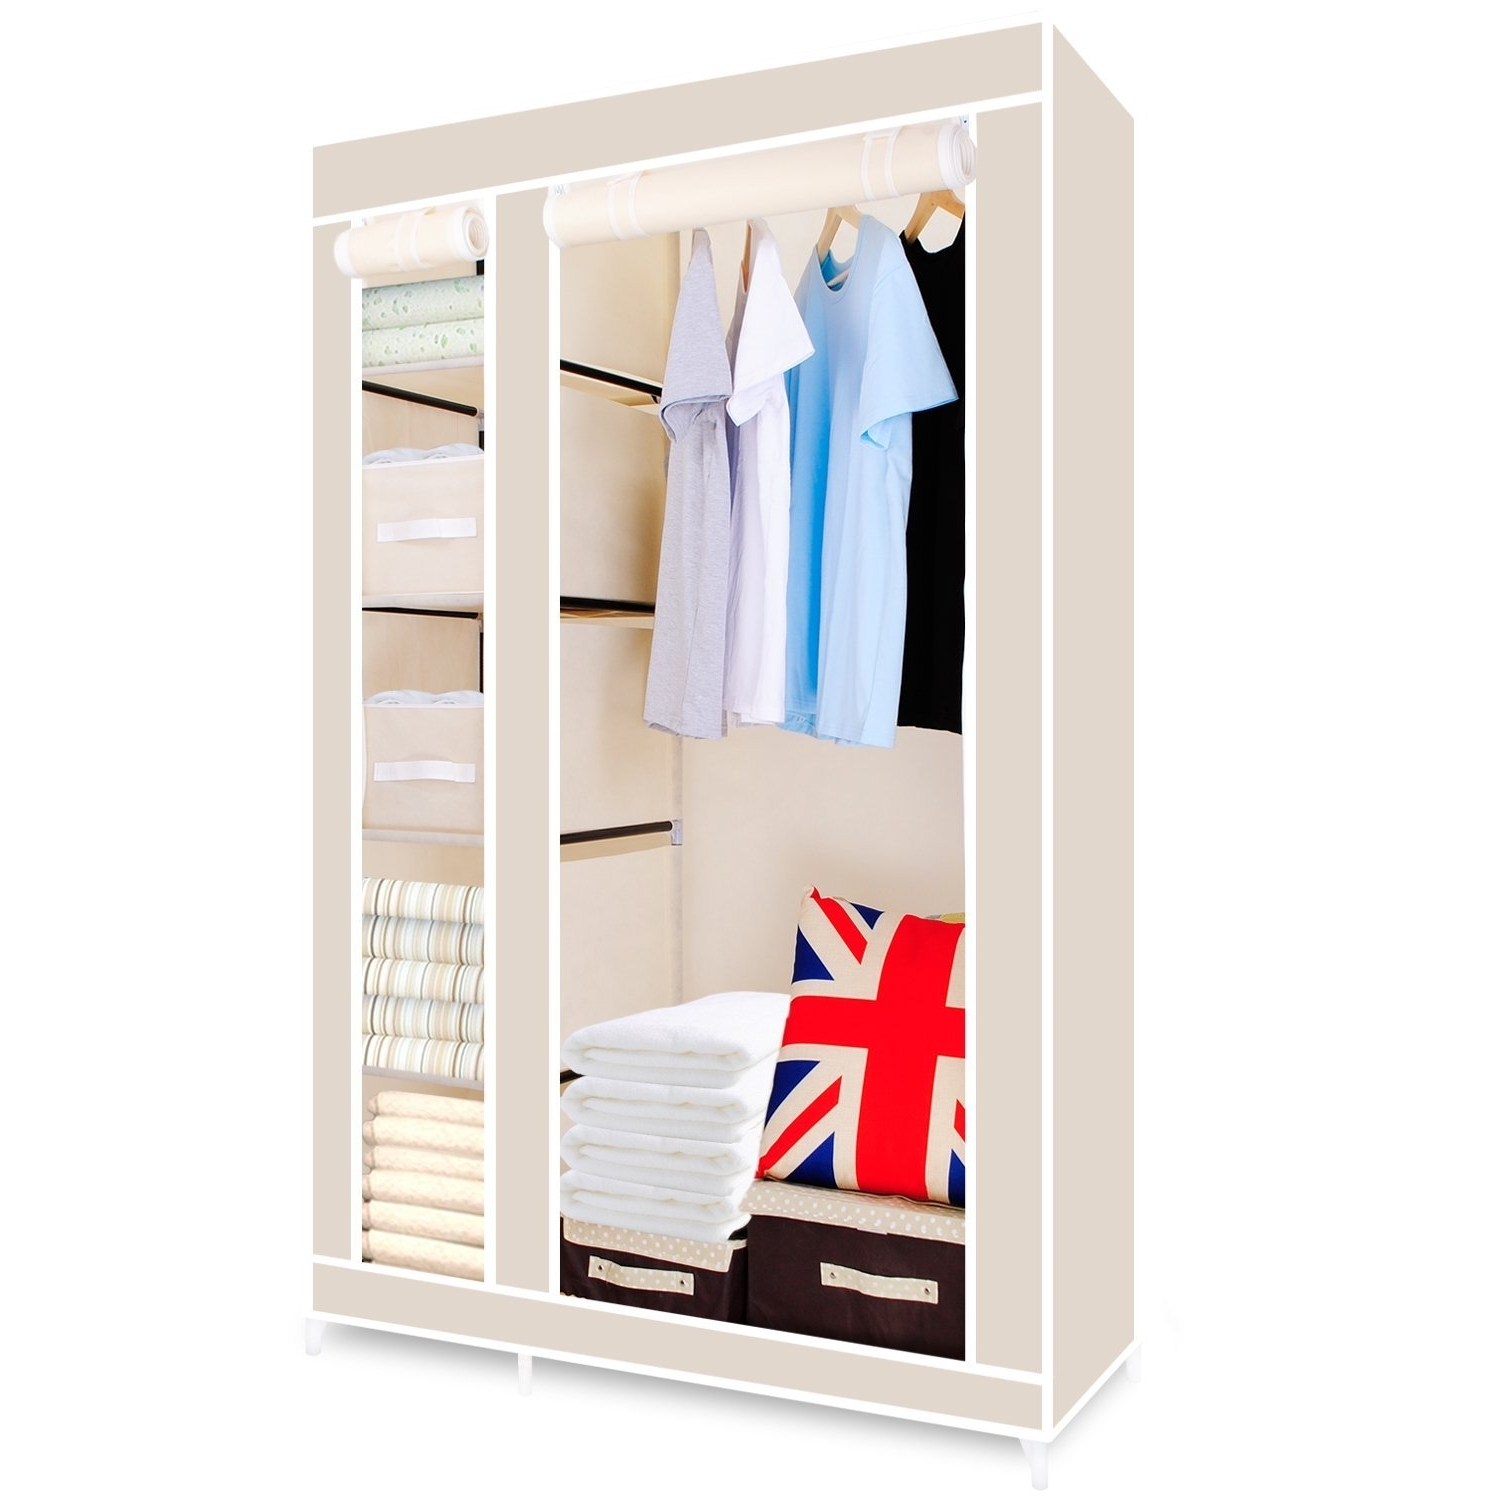 Double Canvas Wardrobes Rail Clothes Storage Cupboard Intended For 2018 Hst Mall Double Canvas Wardrobe Cupboard Clothes Storage Solution (View 6 of 15)